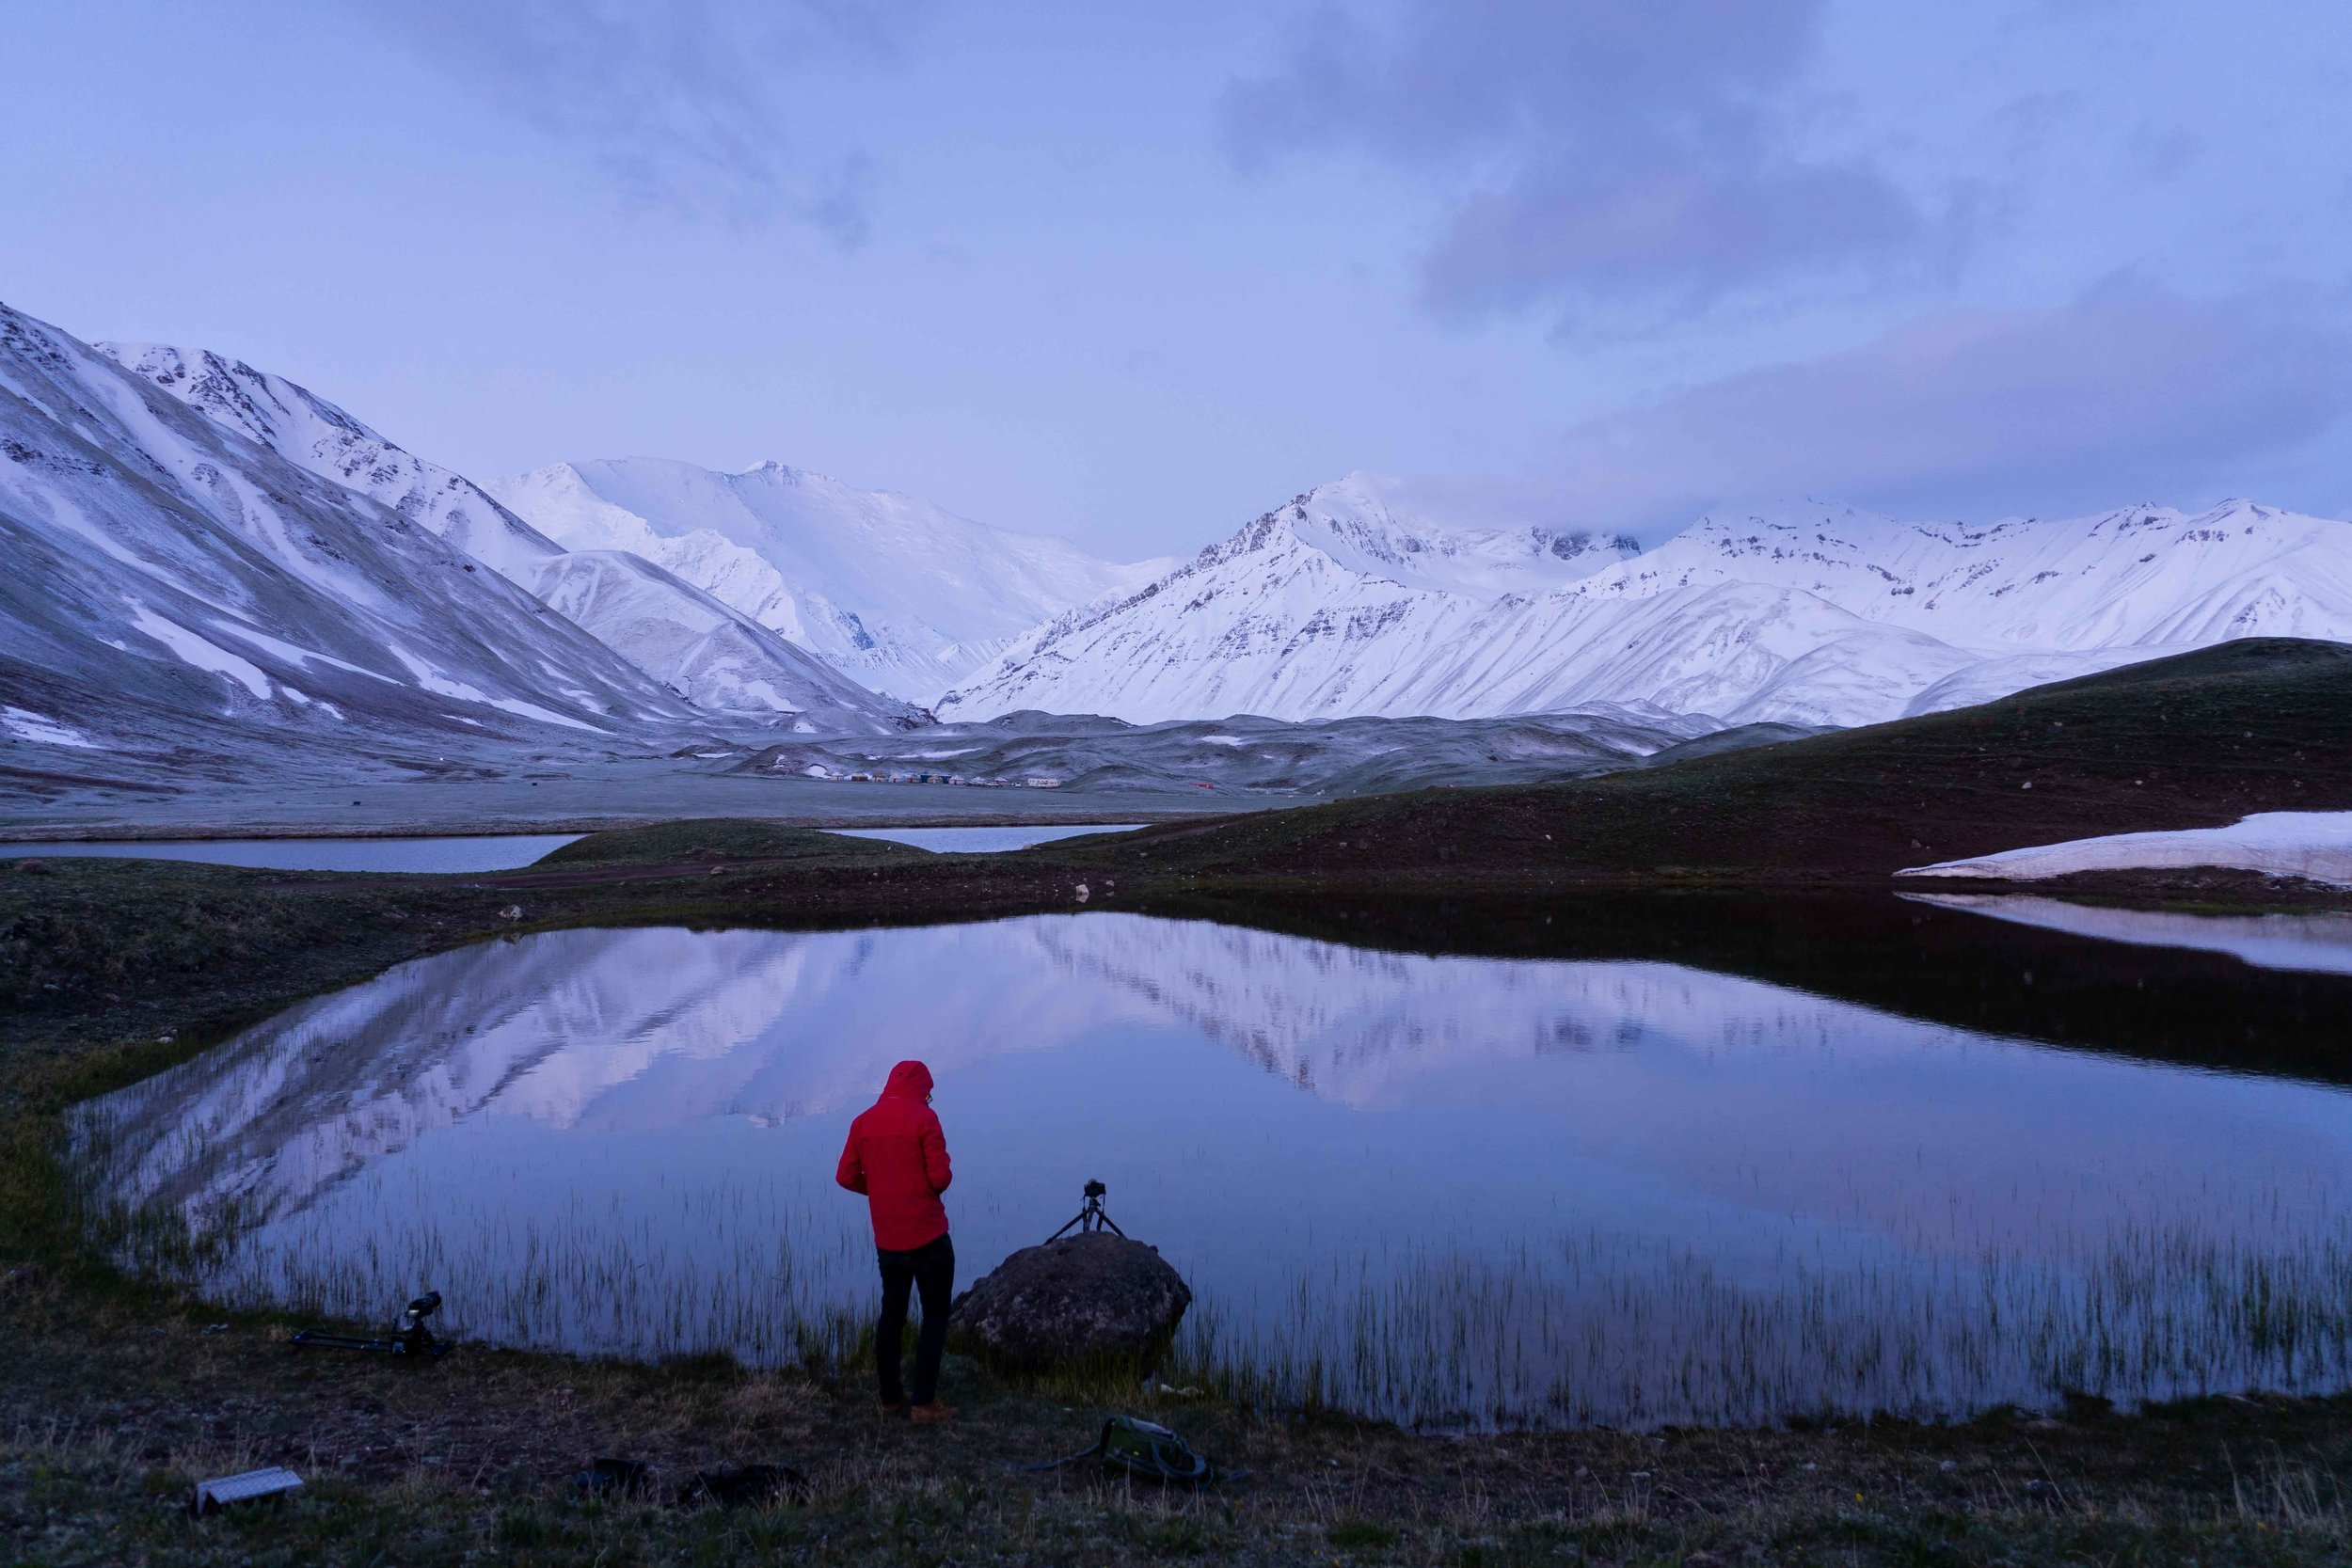 Lenin Peak on the left at Sunrise and Albert Dros shooting the reflection